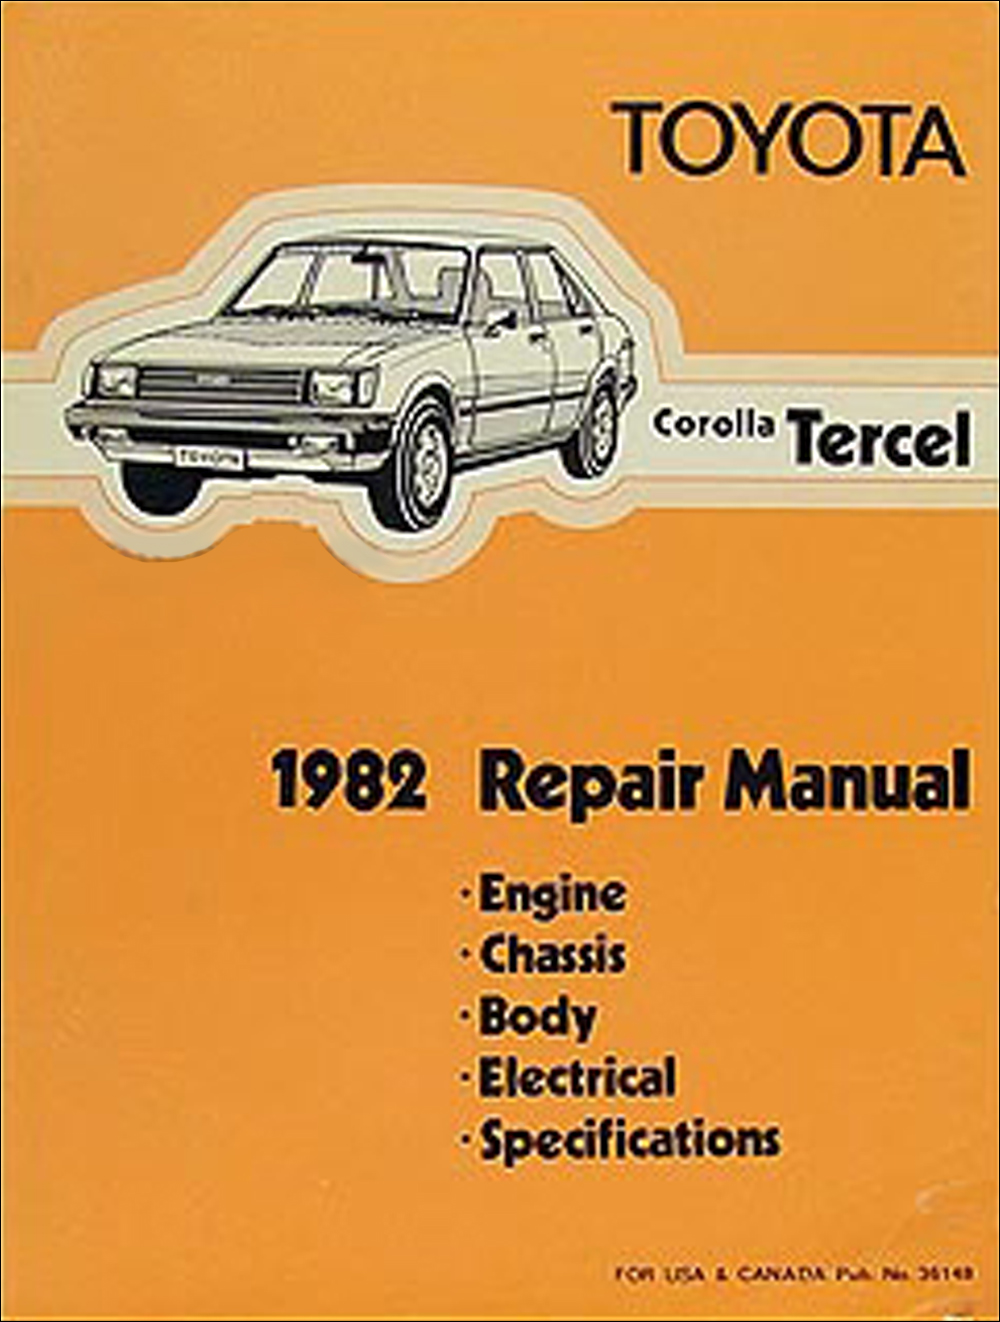 1982 Toyota Corolla Tercel Shop Manual Original No. 36148 (3A-C)